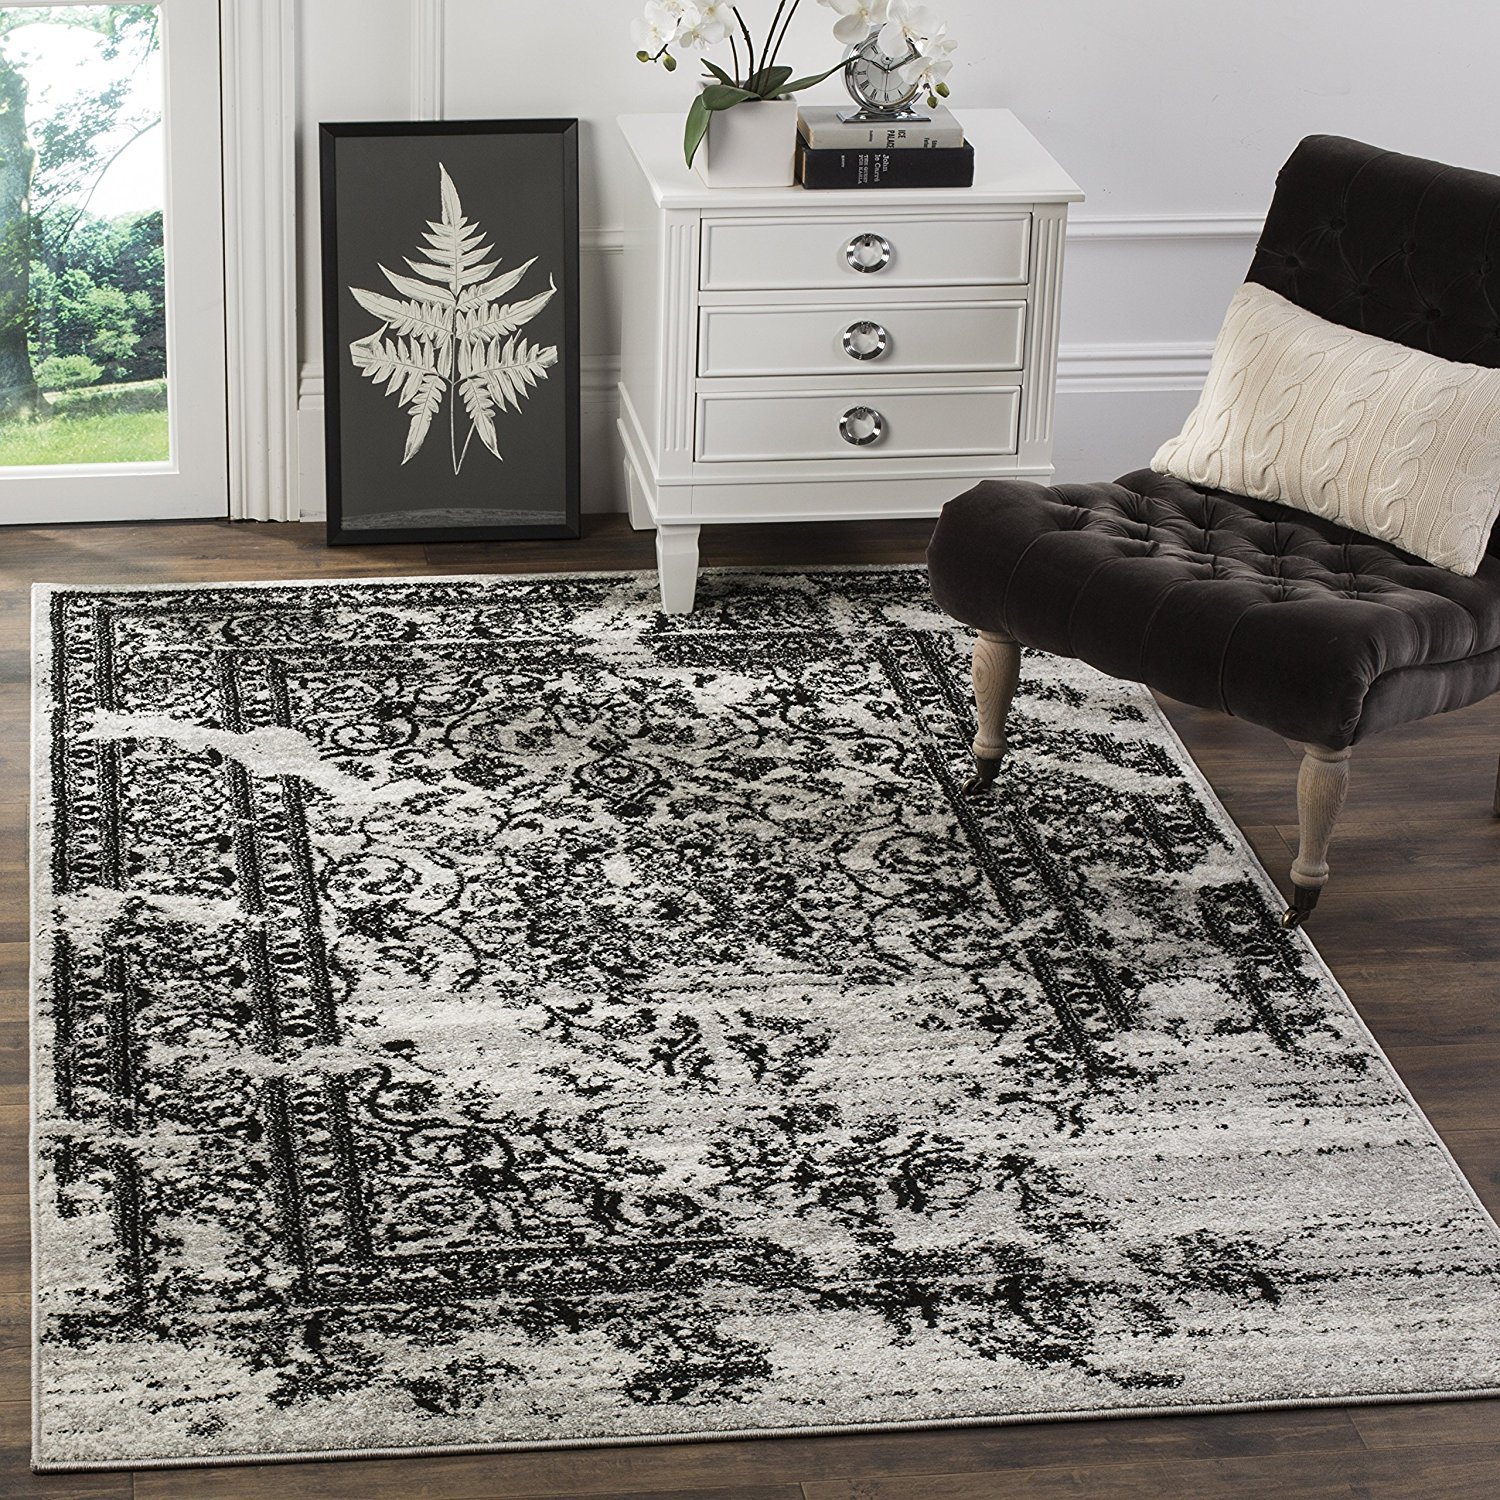 Adirondack Collection Adr101a Silver And Black Oriental Vintage Distressed Area Rug 3 X 5 Vintage Distressed Design Adds A Fashion Forward Flair To By Safavieh Ship From Us Walmart Com Walmart Com